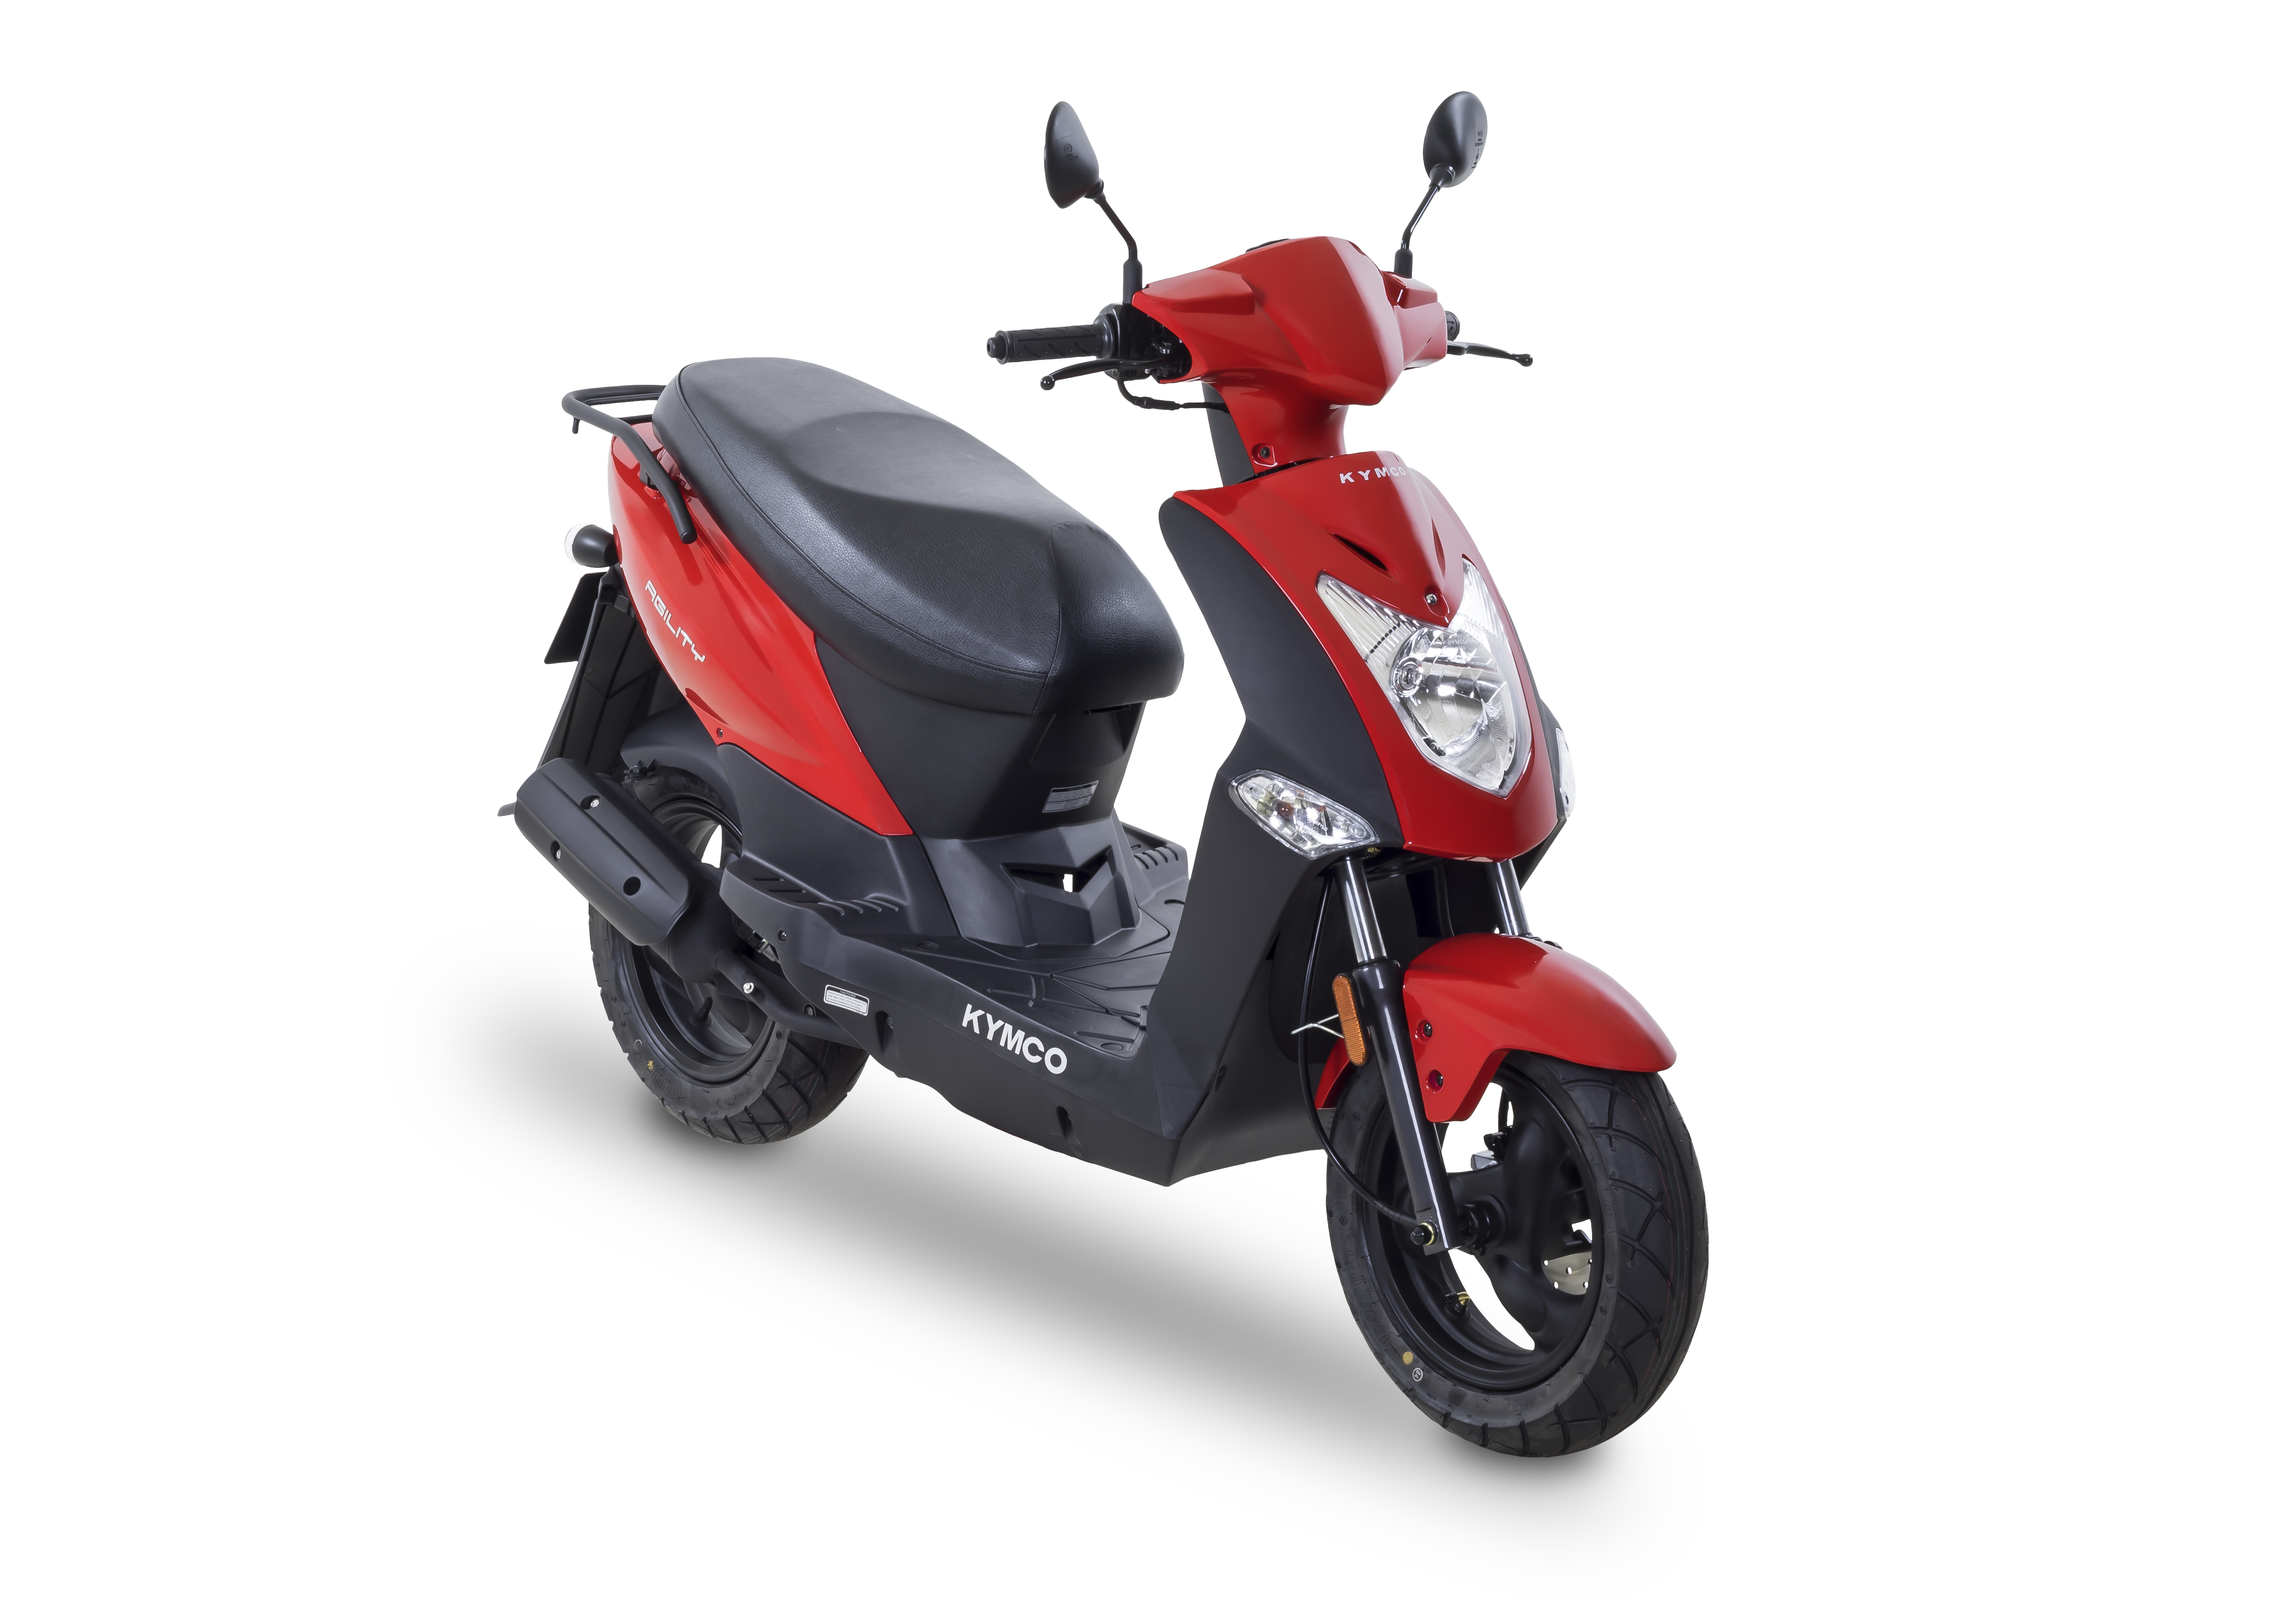 agility 50 euro4 4t kymco r1 quads motos scooters. Black Bedroom Furniture Sets. Home Design Ideas